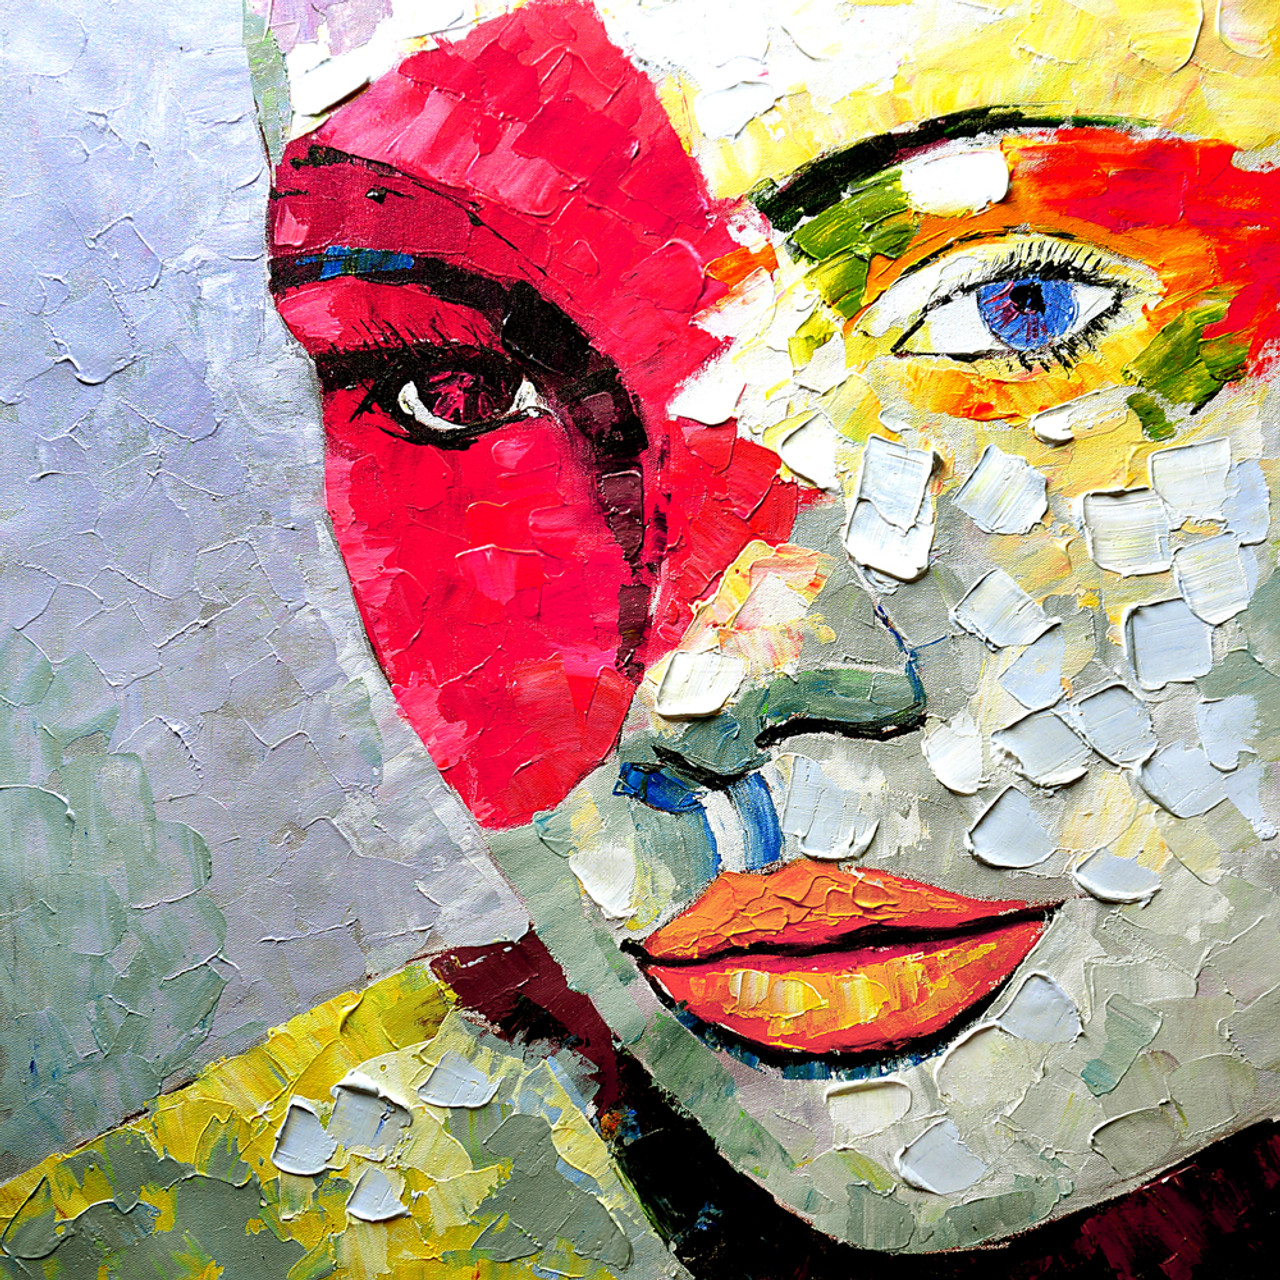 Buy Rocking Lady 3 by Community Artists Group@ Rs. 6690. Code ...